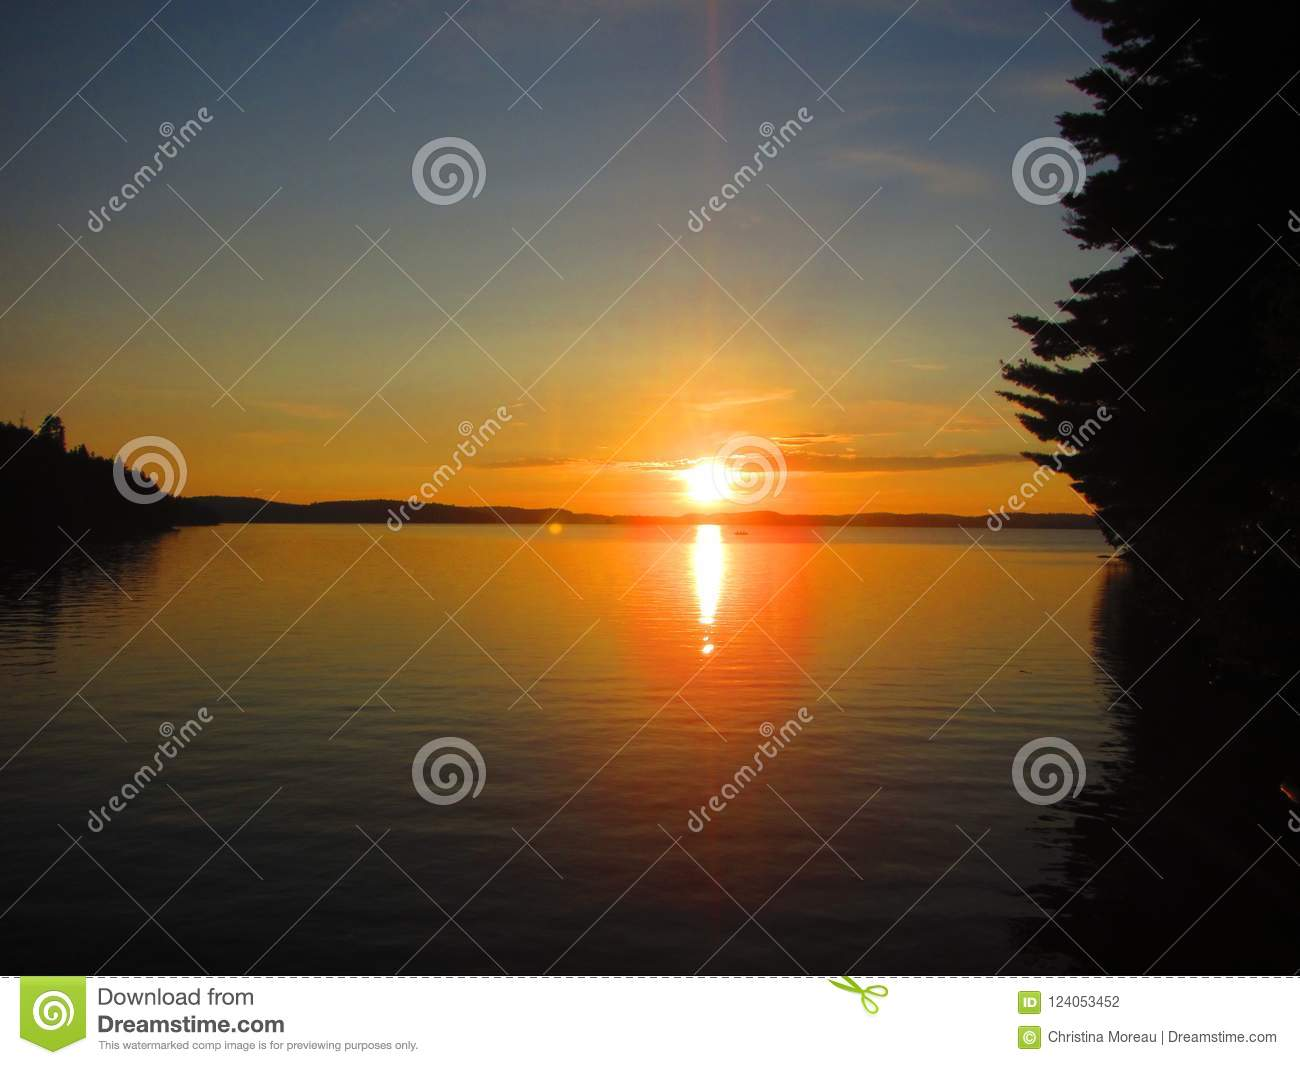 View of a sunset over a freshwater lake in North America